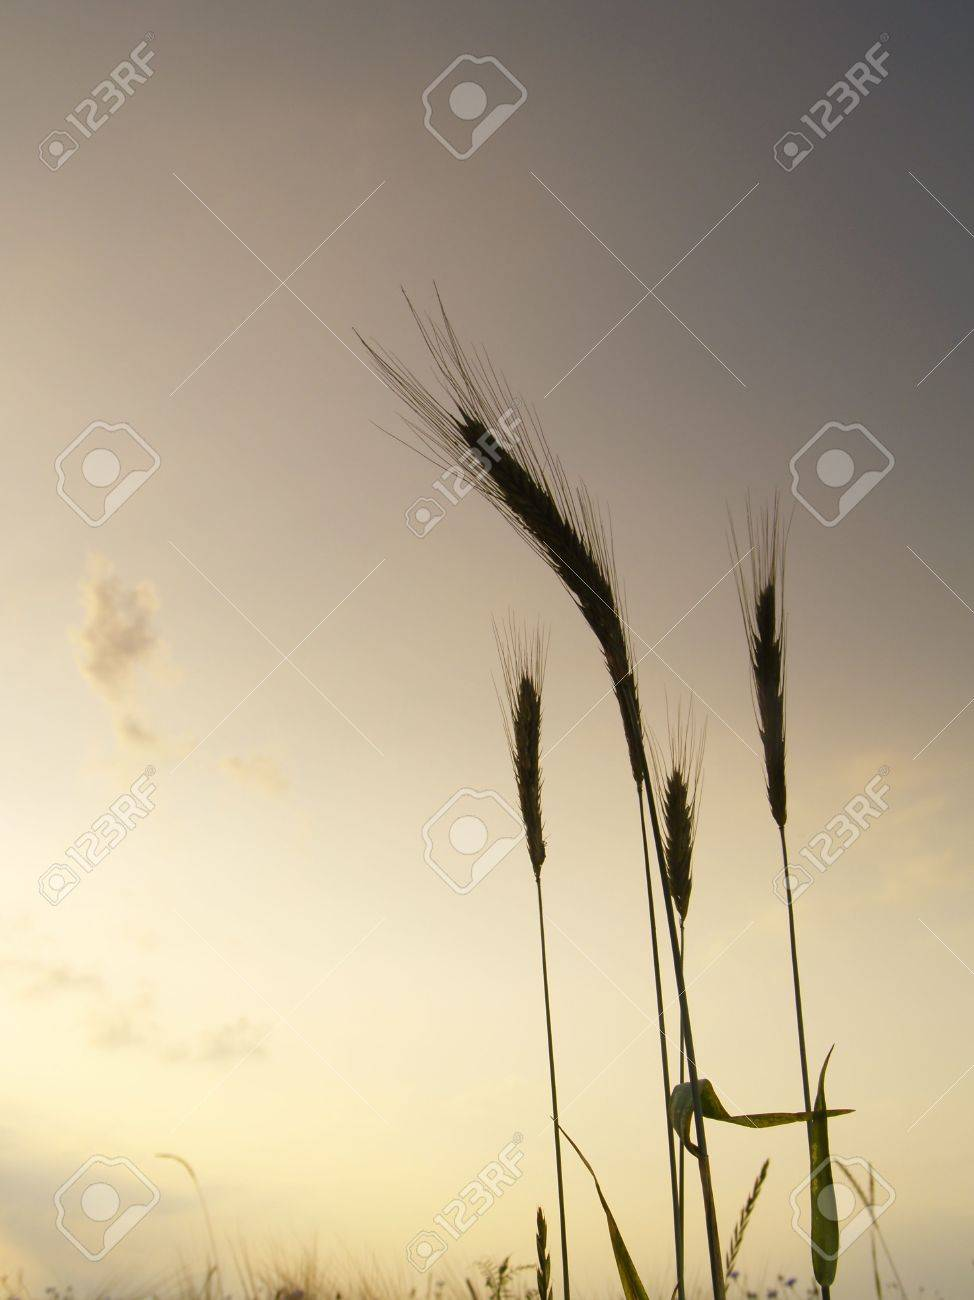 silhouettes of five barley ears, backlit in the evening with clouds in the sky Stock Photo - 5187844